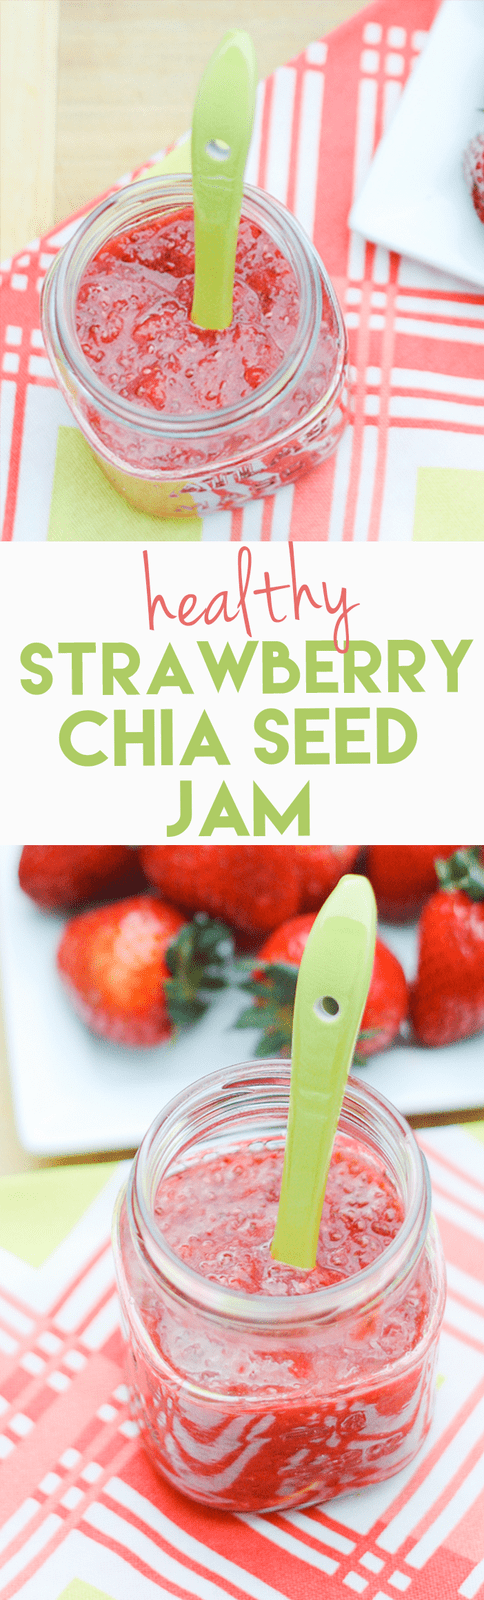 Healthy Strawberry Chia Seed Jam